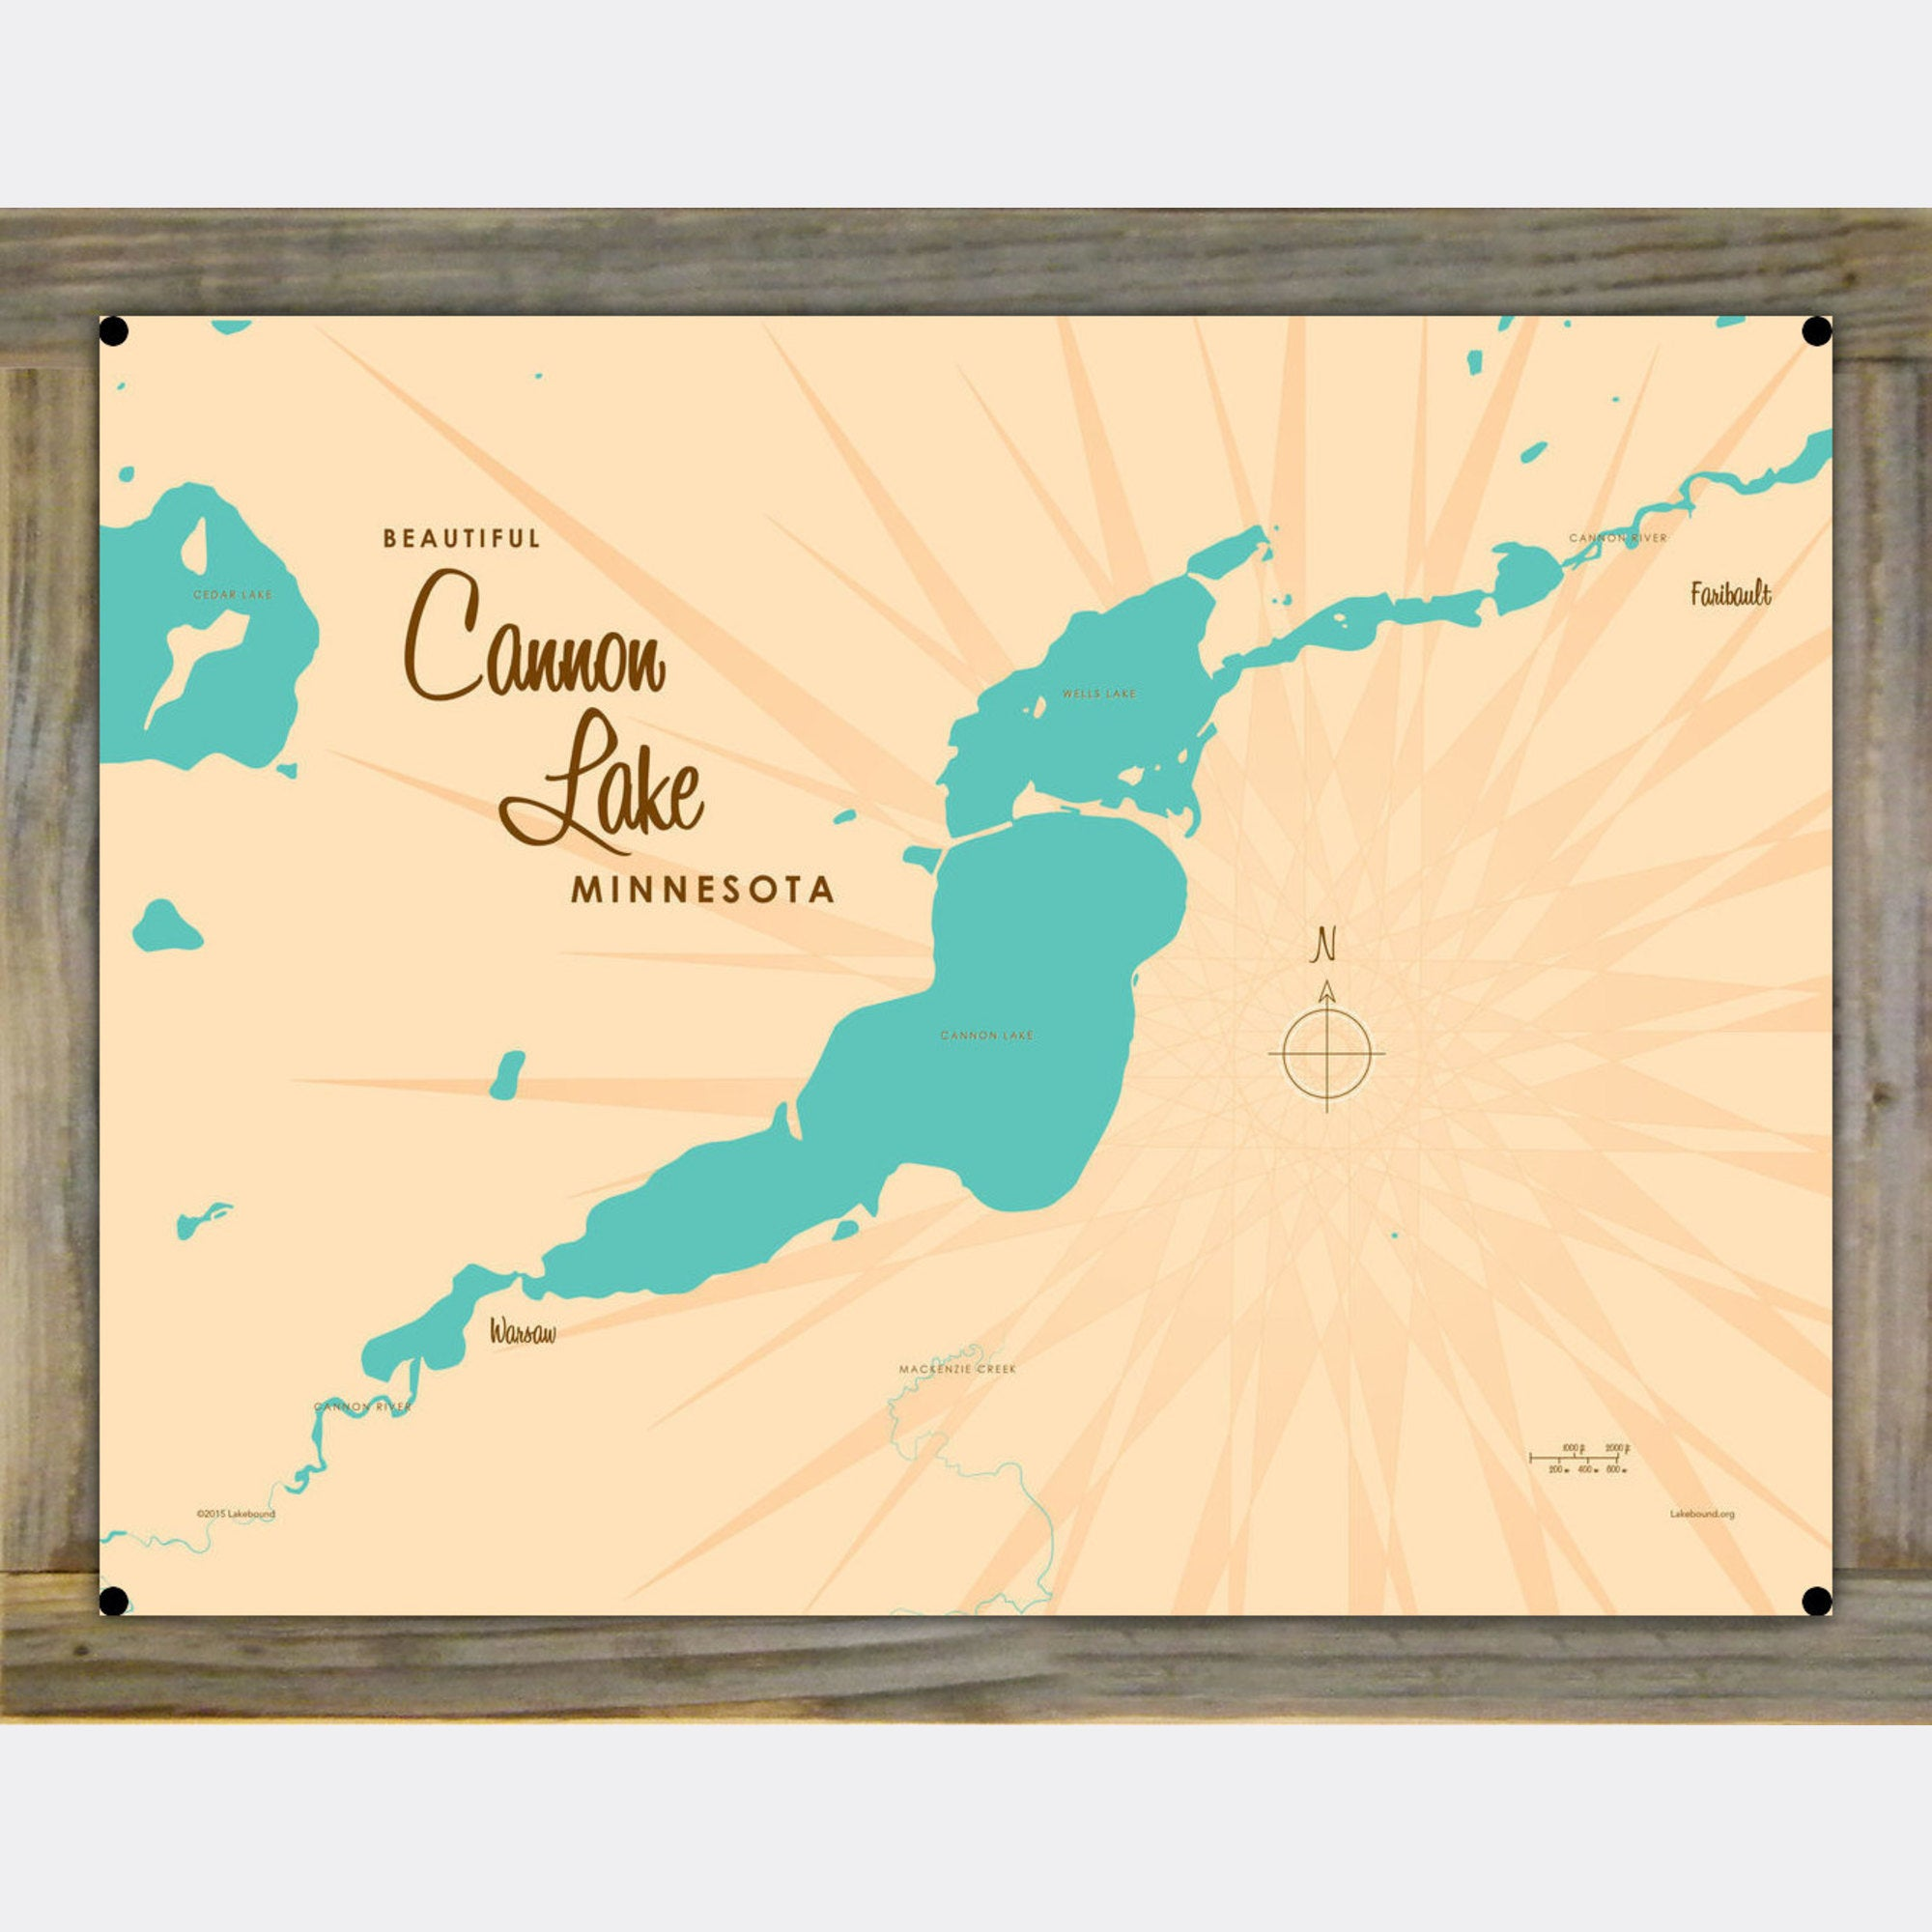 Cannon Lake Minnesota, Wood-Mounted Metal Sign Map Art